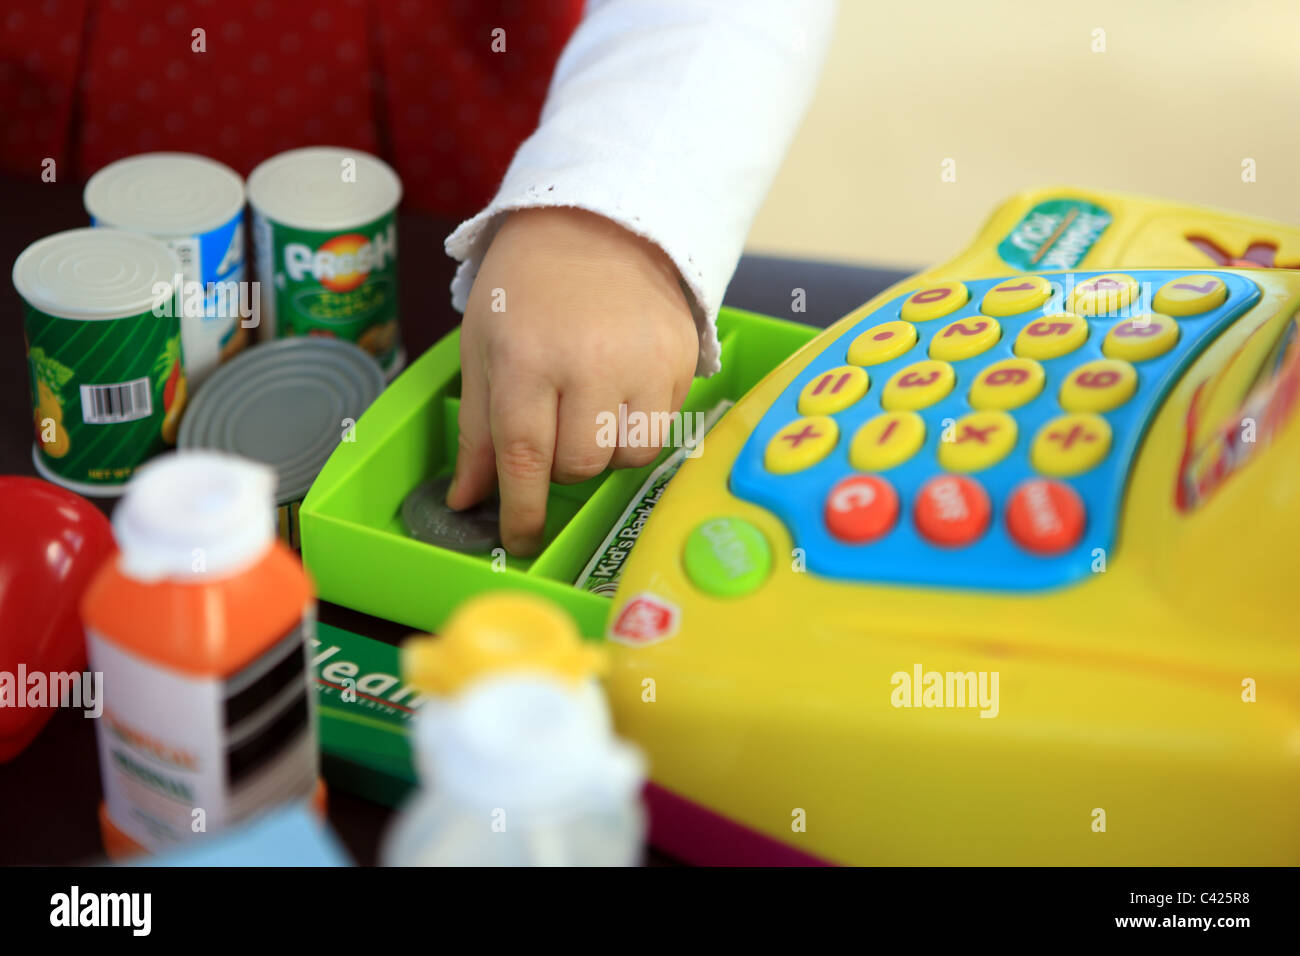 playing-with-a-toy-cash-register-C425R8.